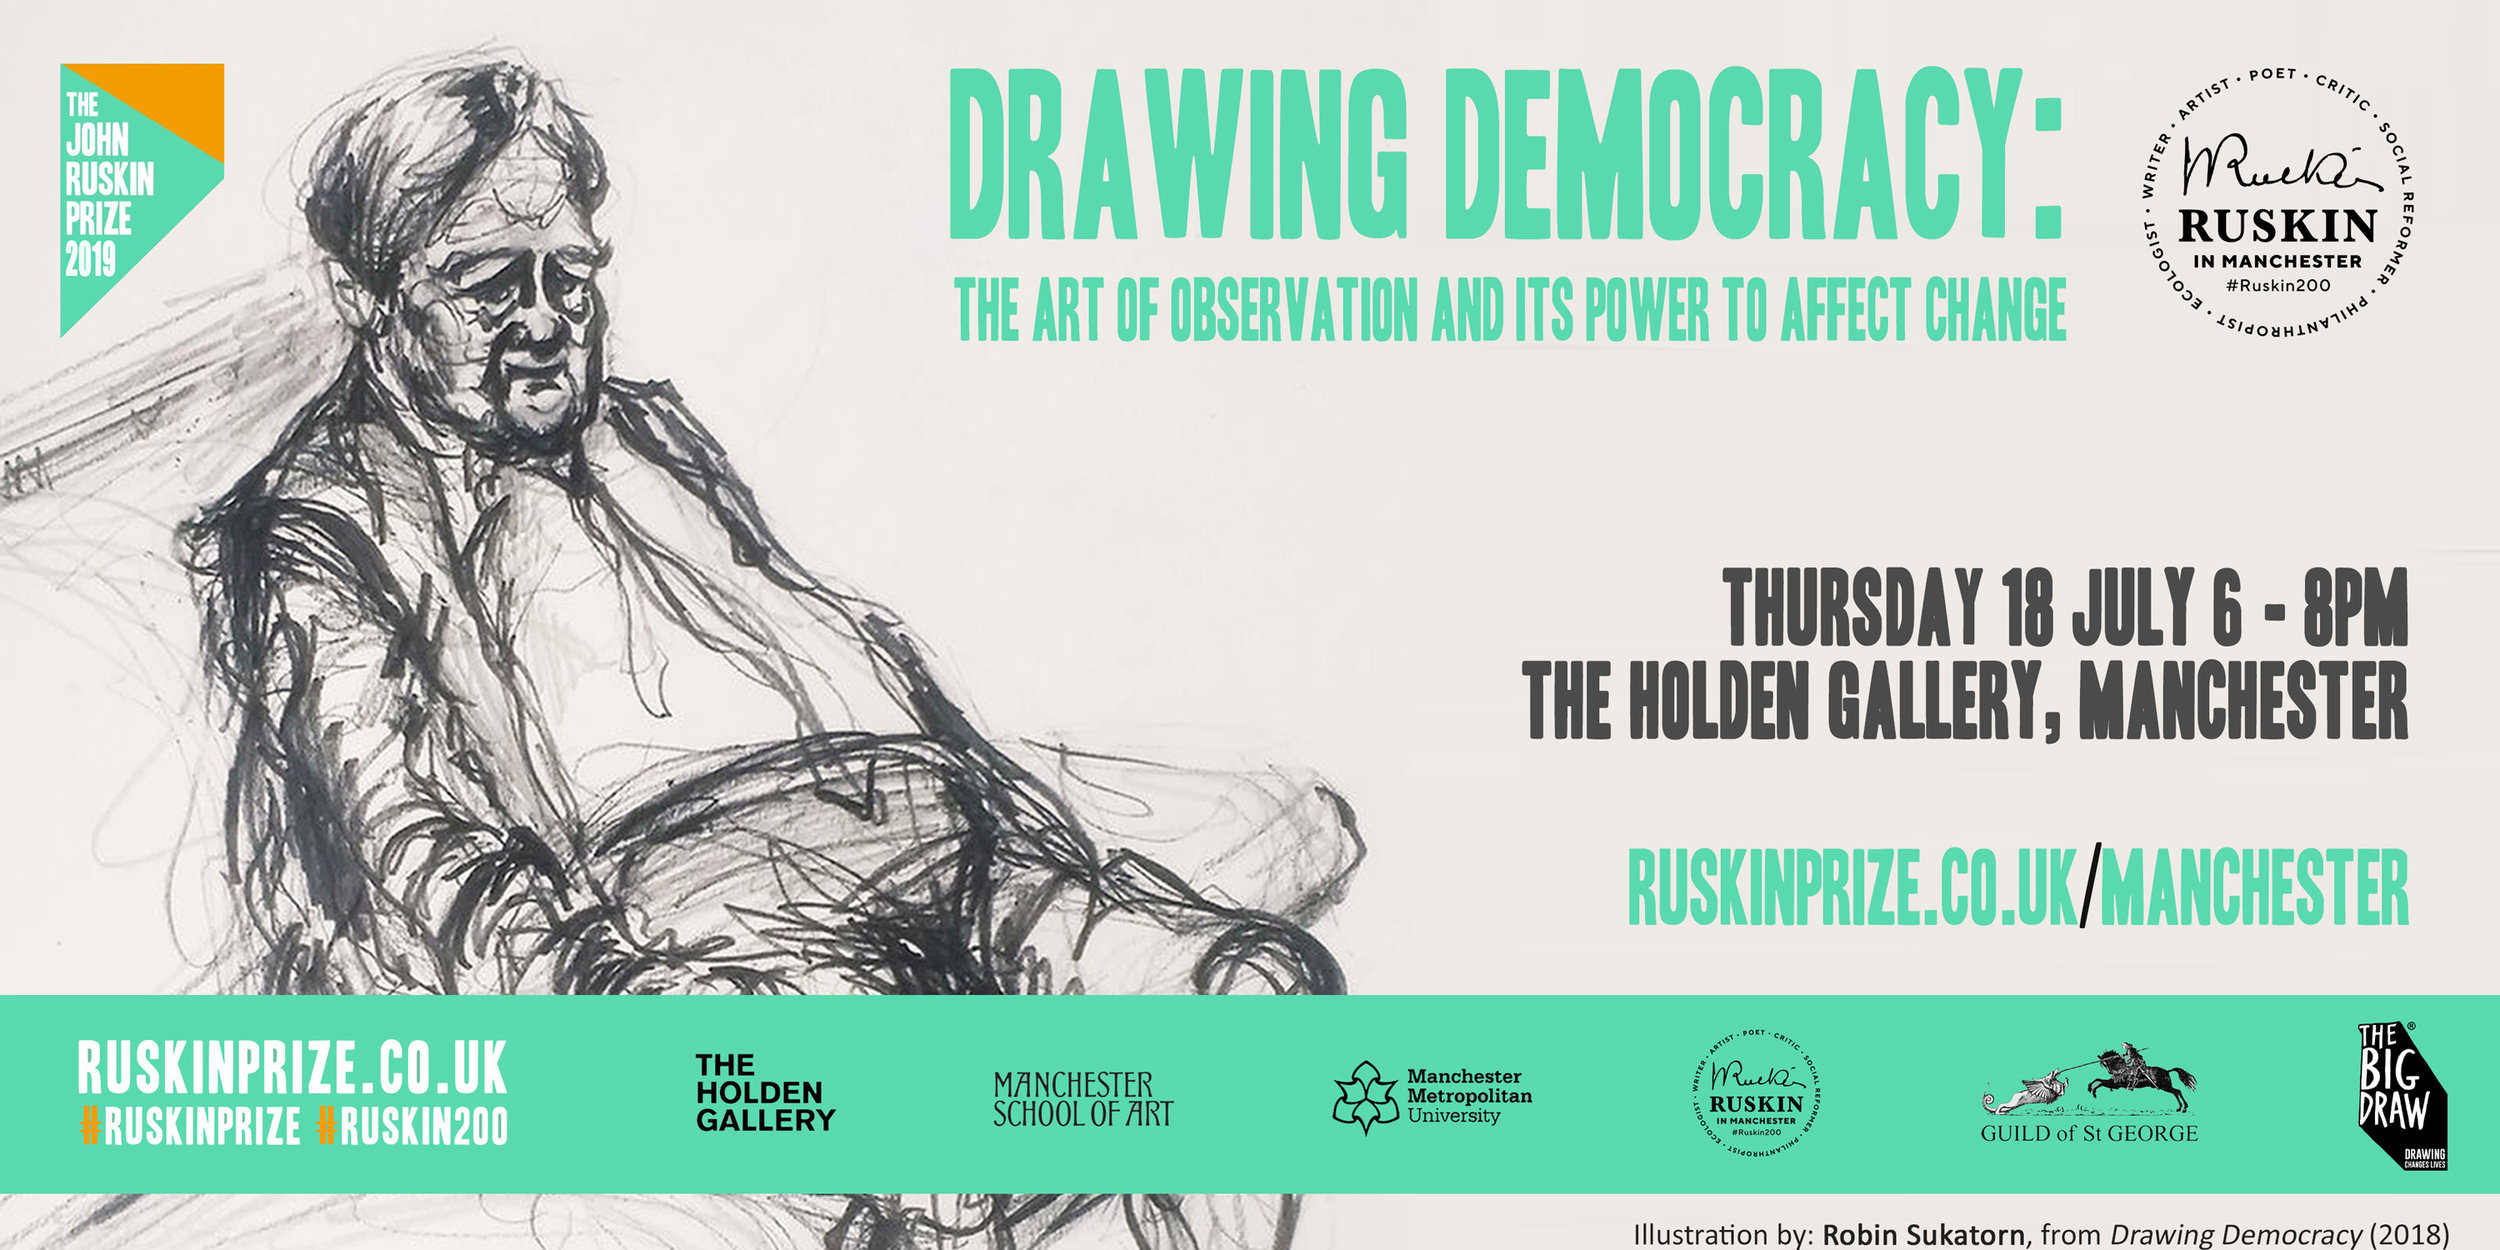 Drawing Demo_eventbrite deets 1.jpg